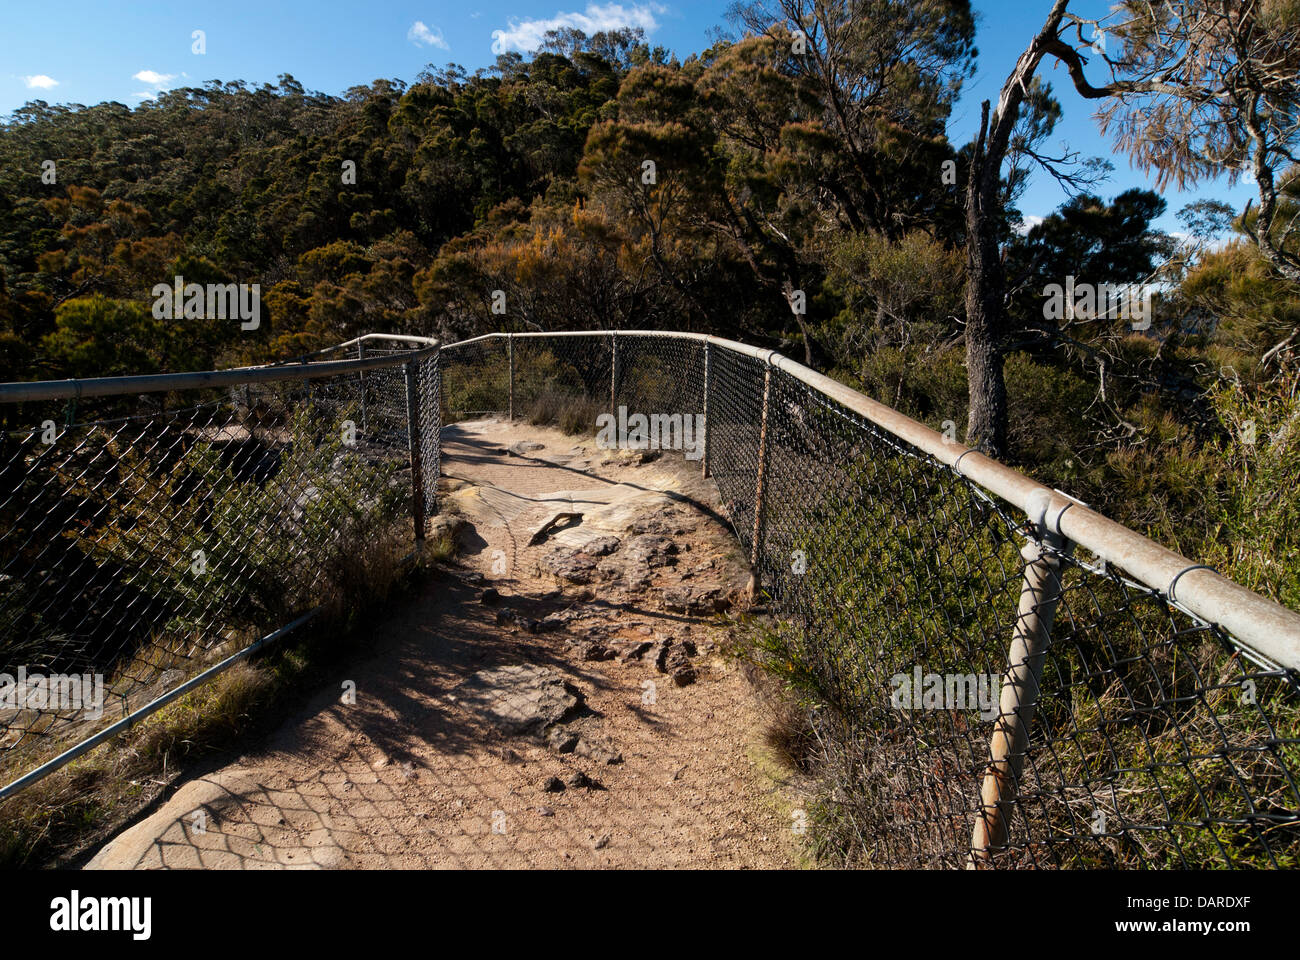 Pathway to the Sublime Point viewing rock, Blue Mountains, Australia Stock Photo